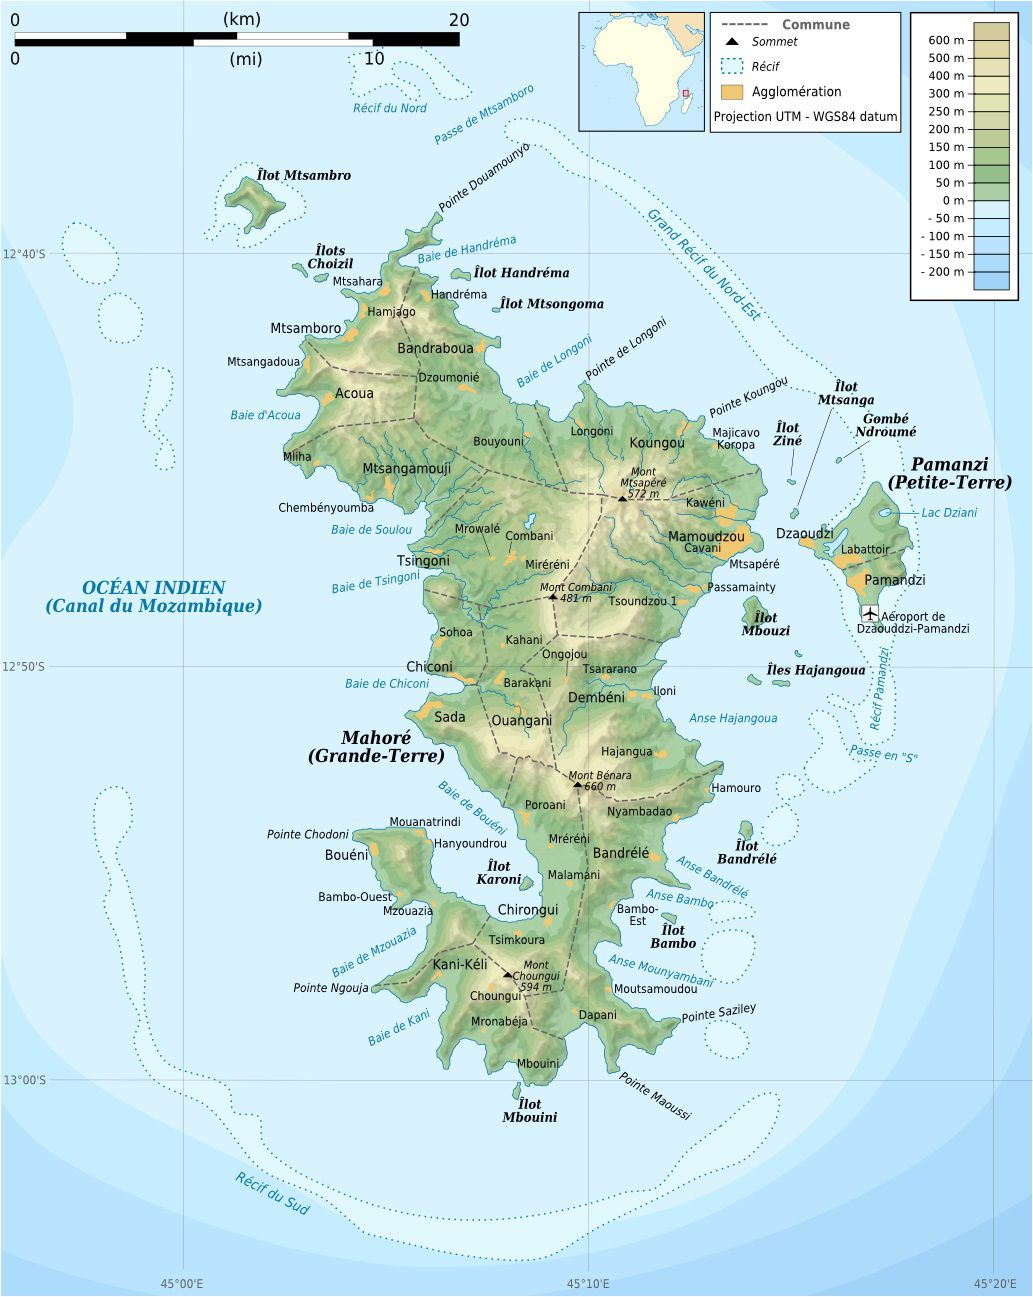 Carte du relief de Mayotte